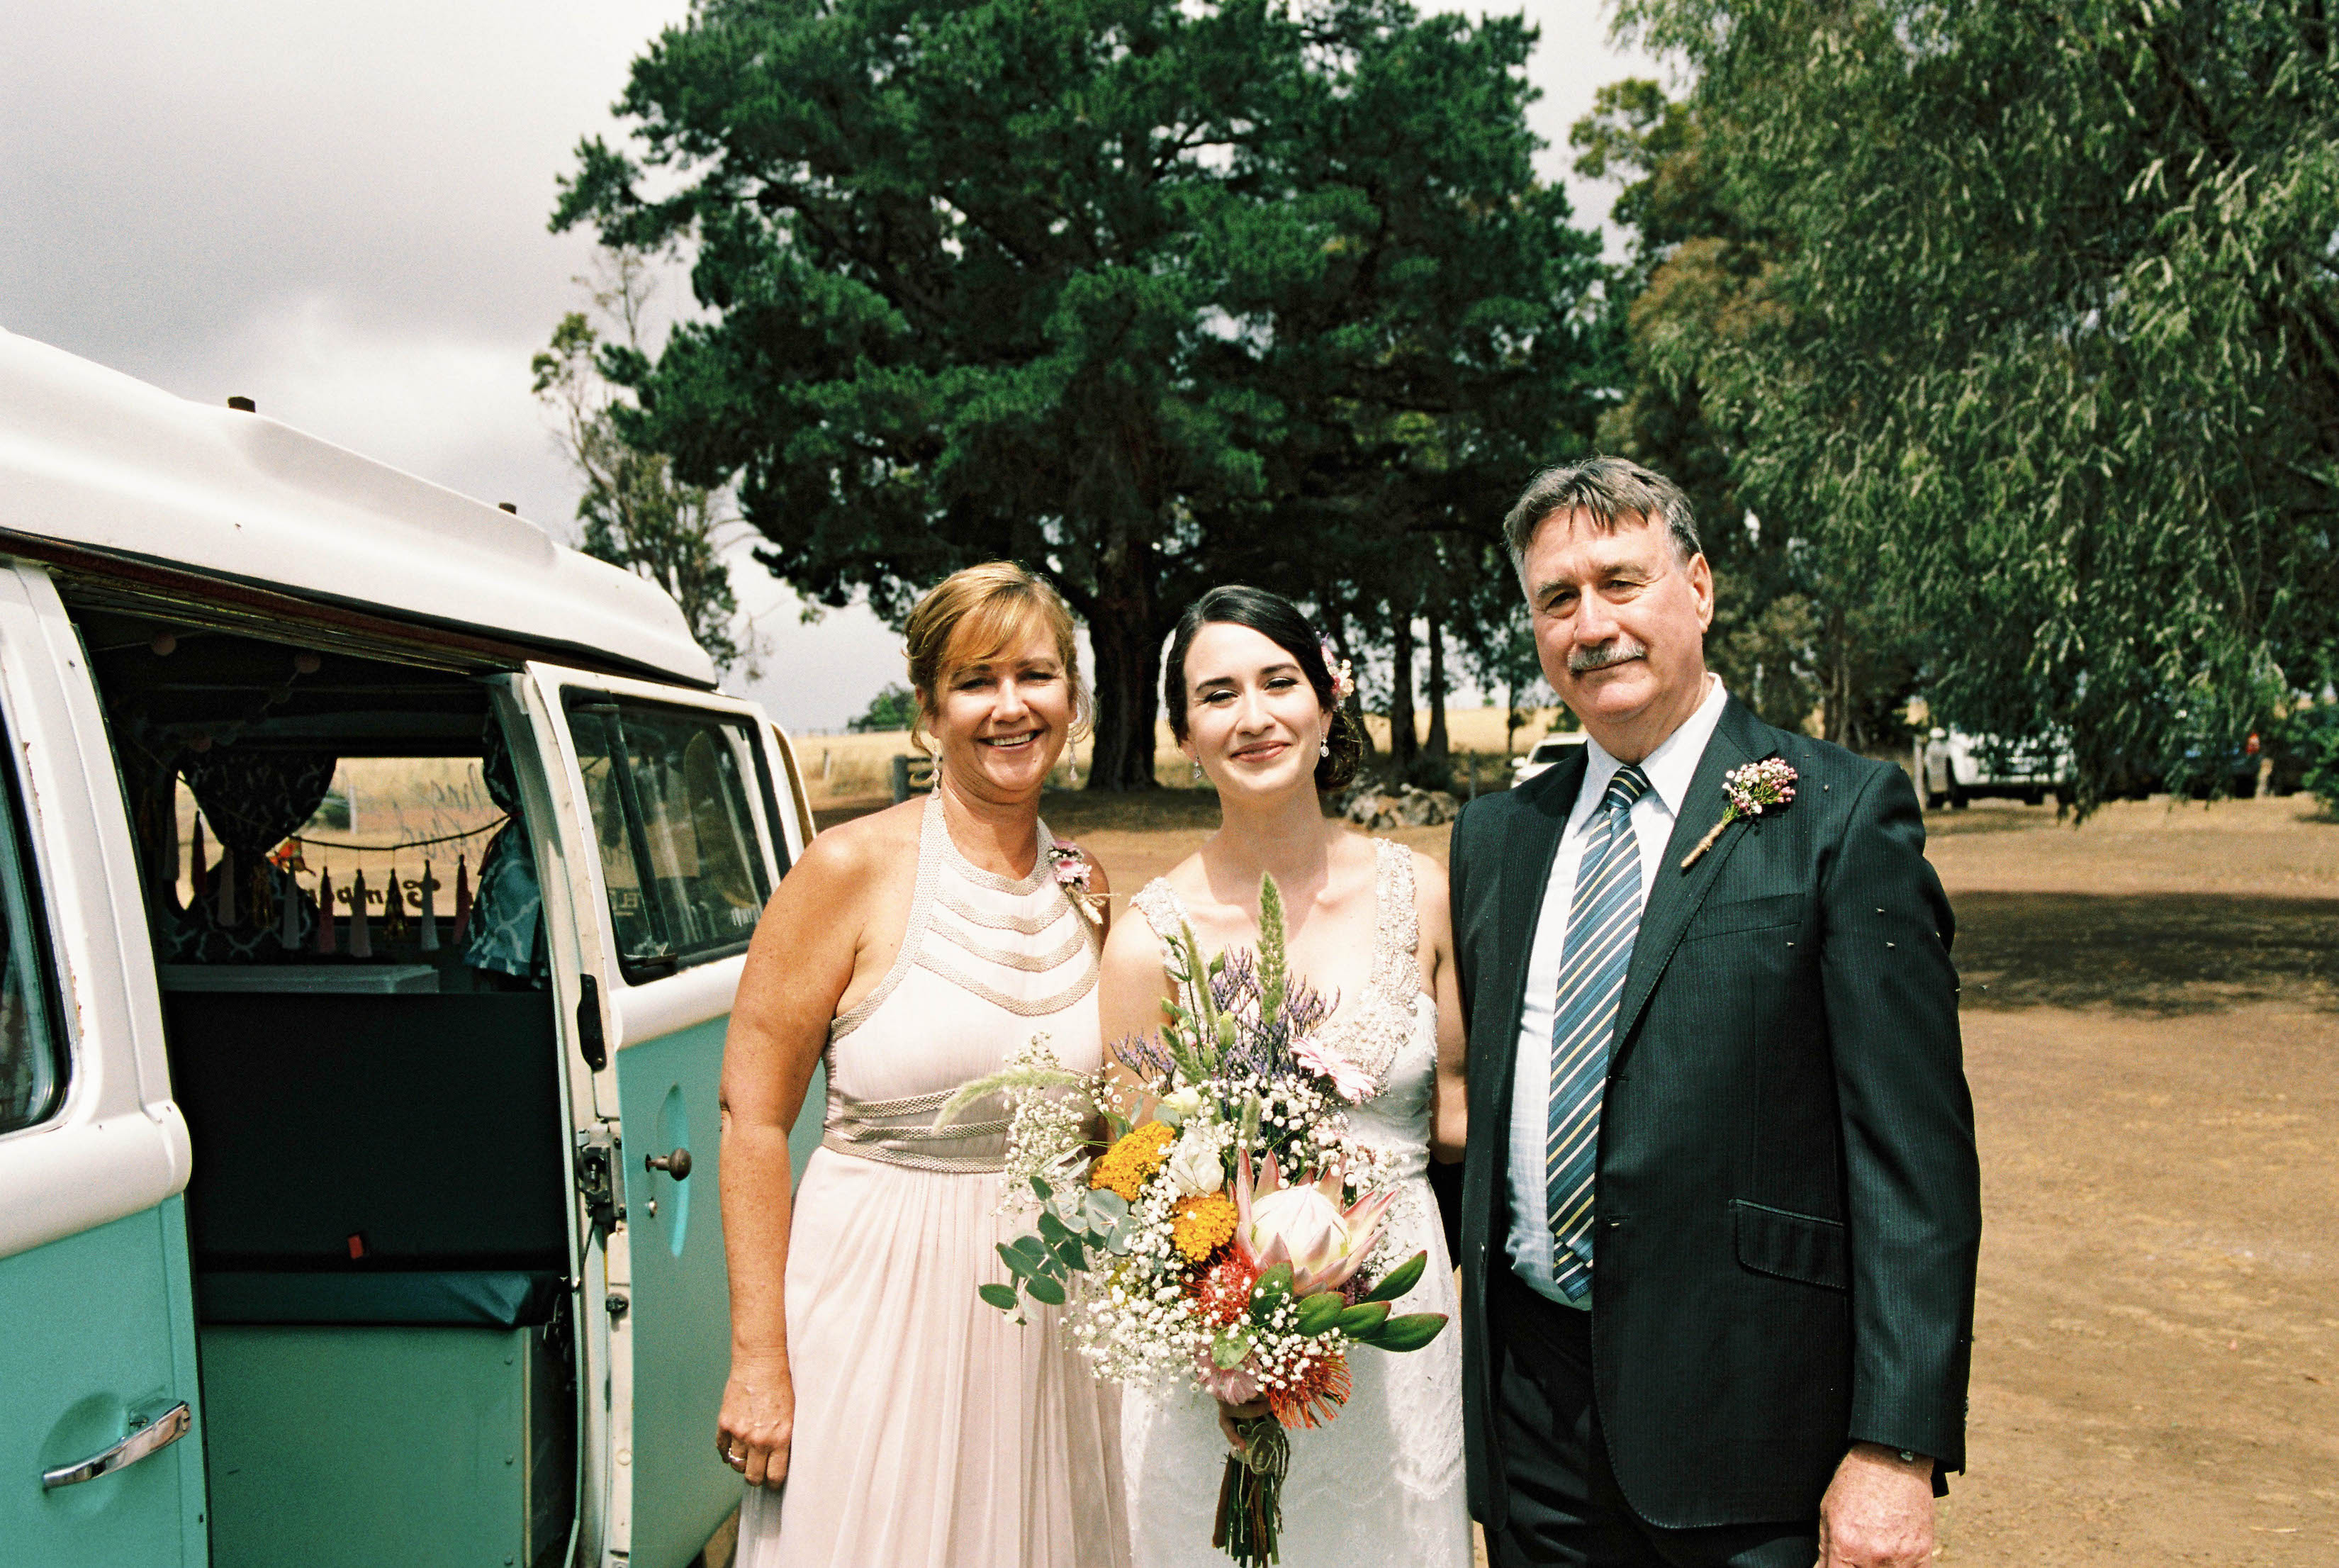 A portrait of the bride and her parents before the shearing shed wedding ceremony begins in Bridgetown, Australia